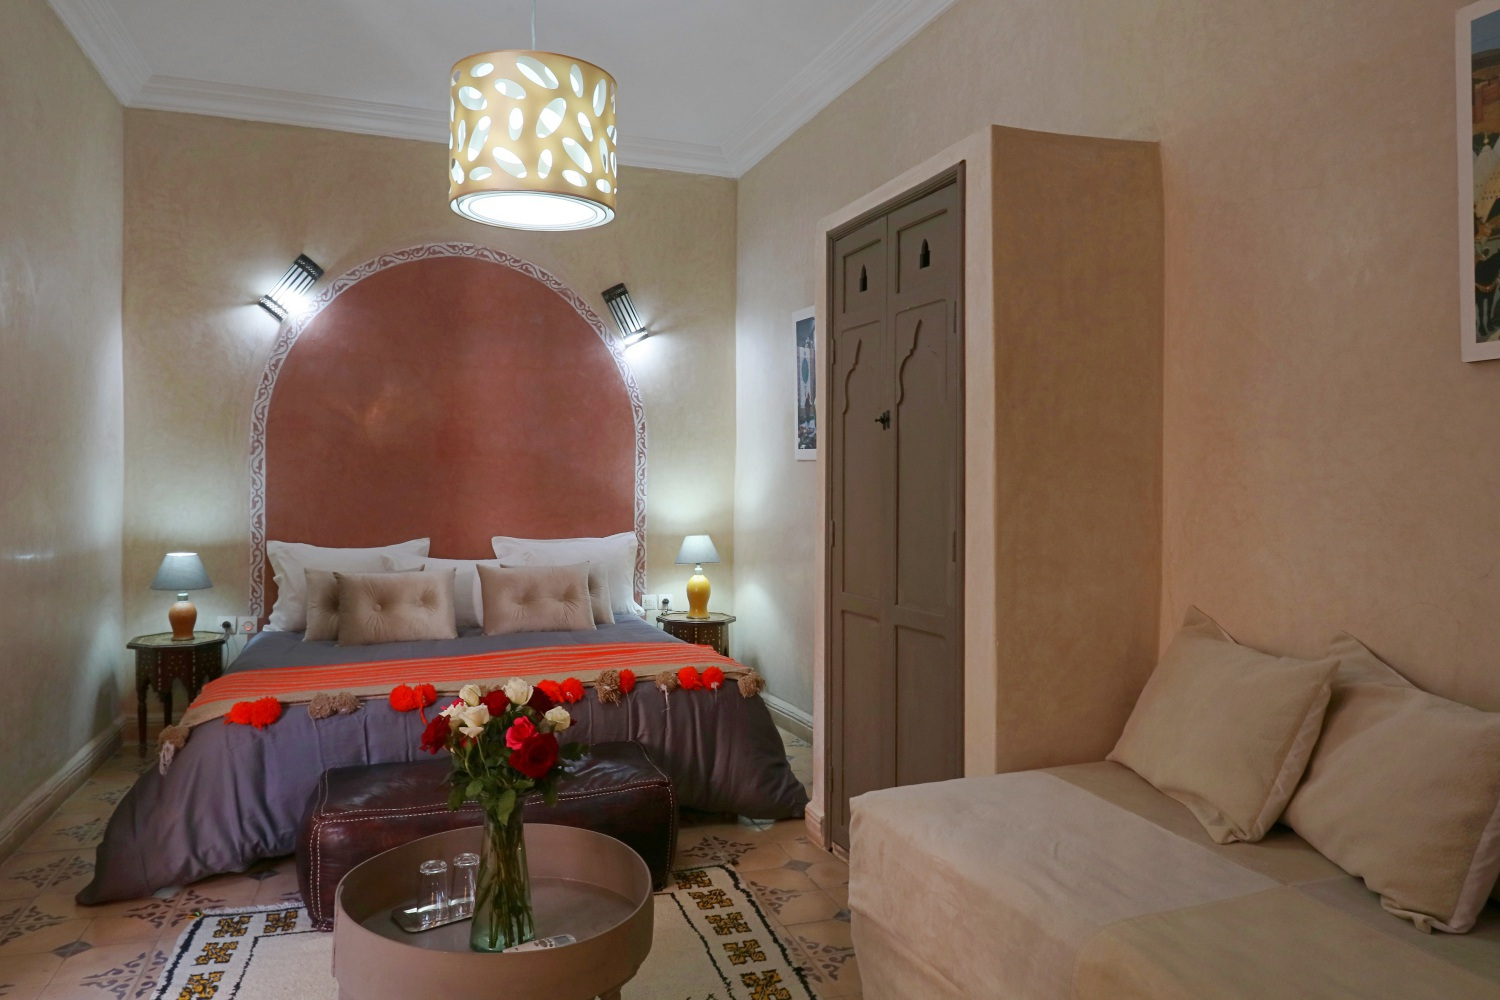 accommodation in riad